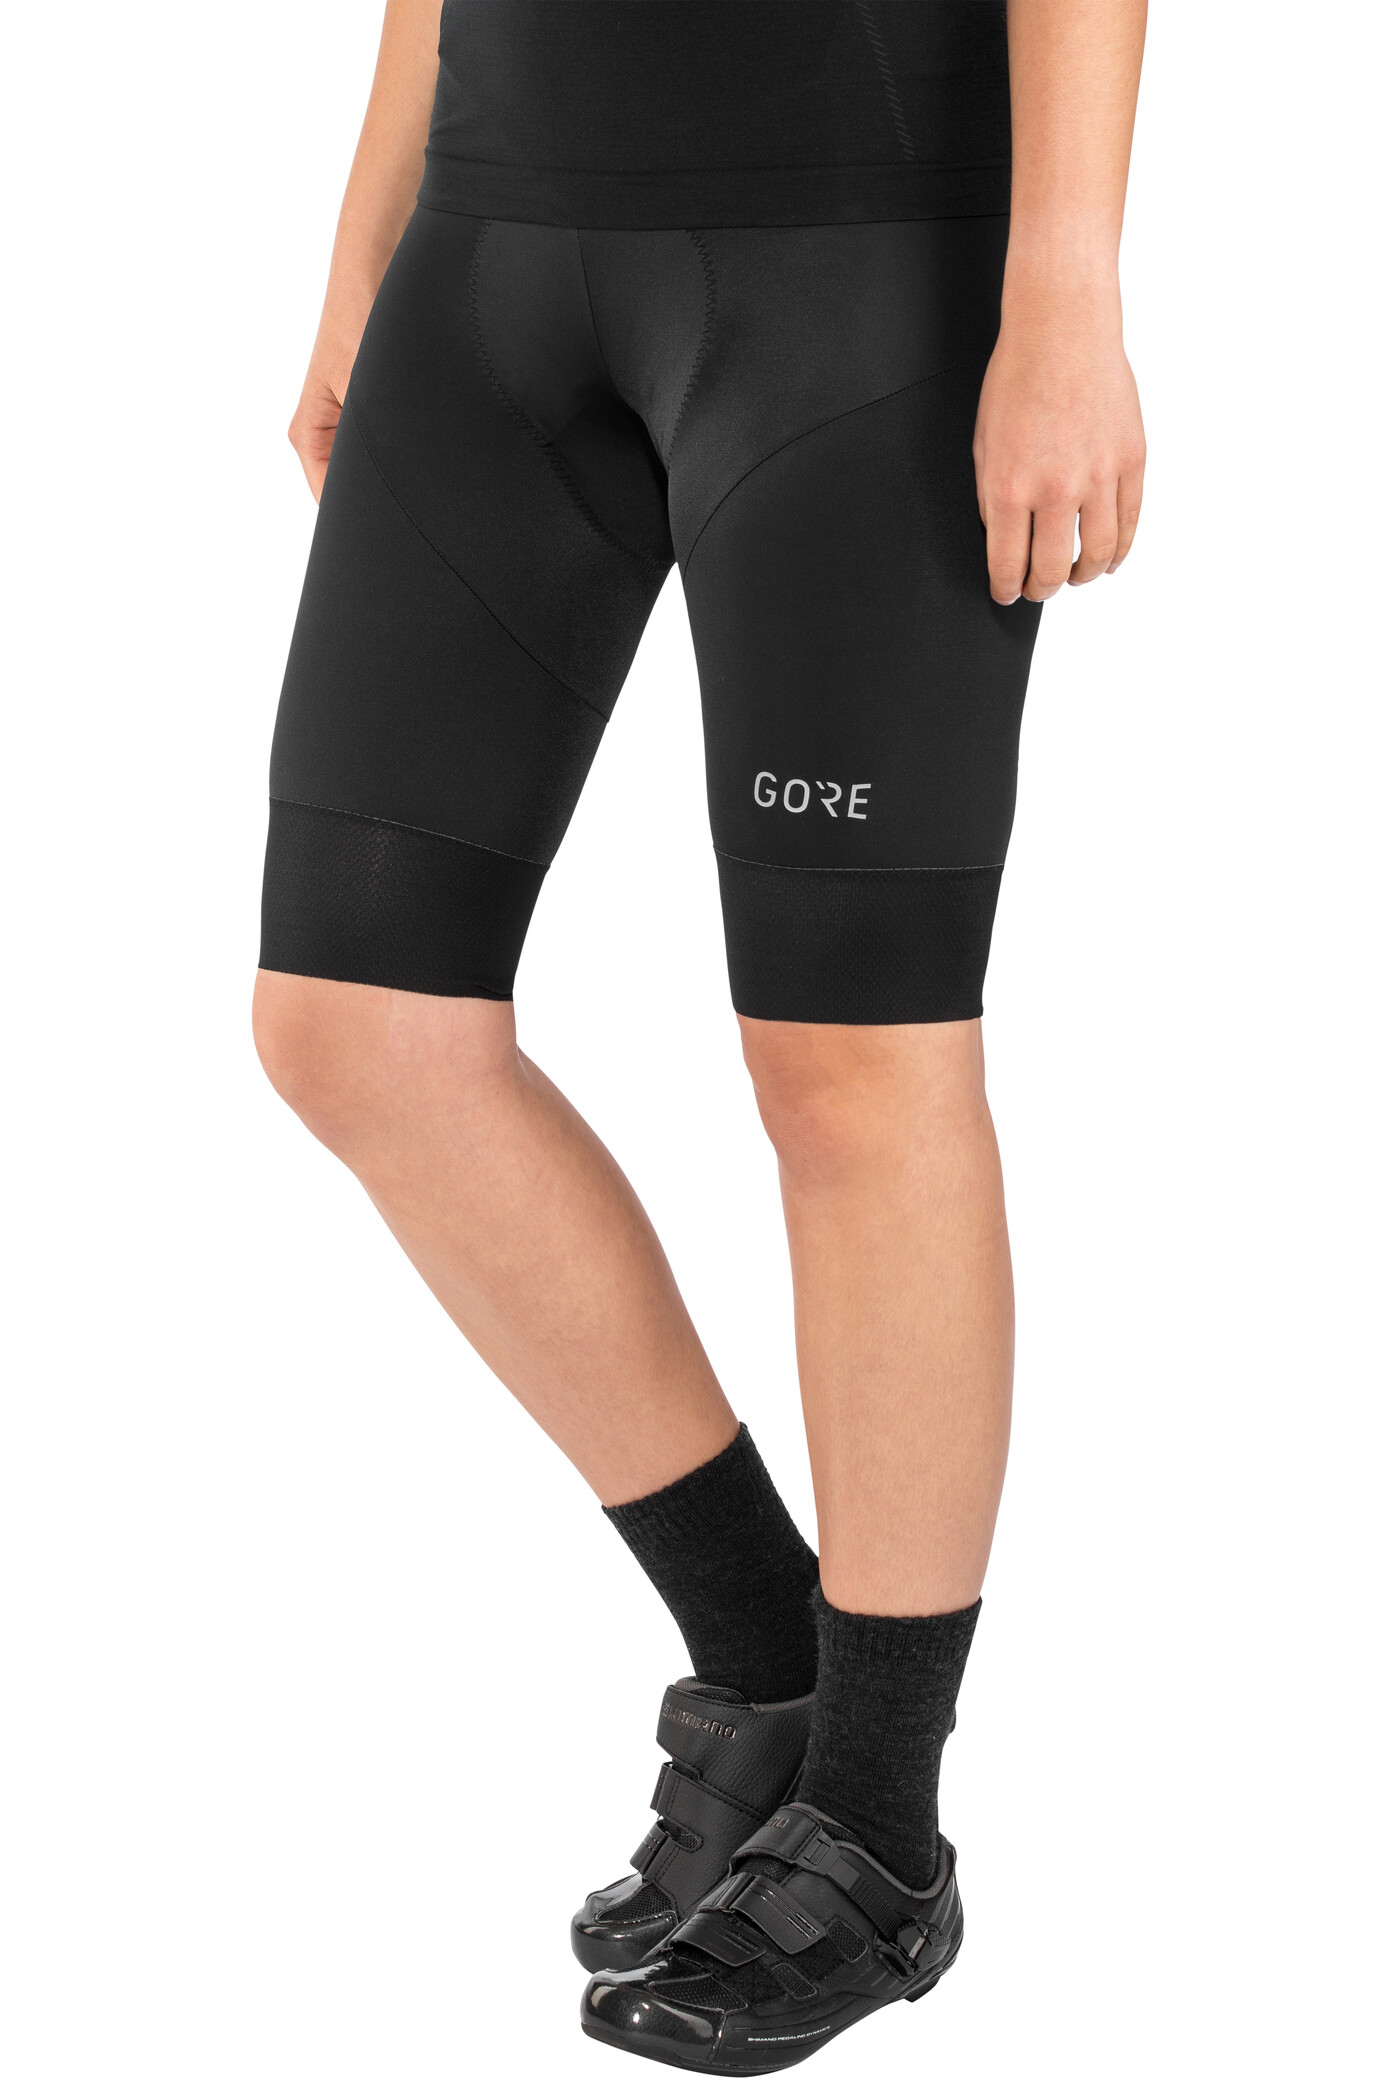 gore wear c3 thermo leg warmers